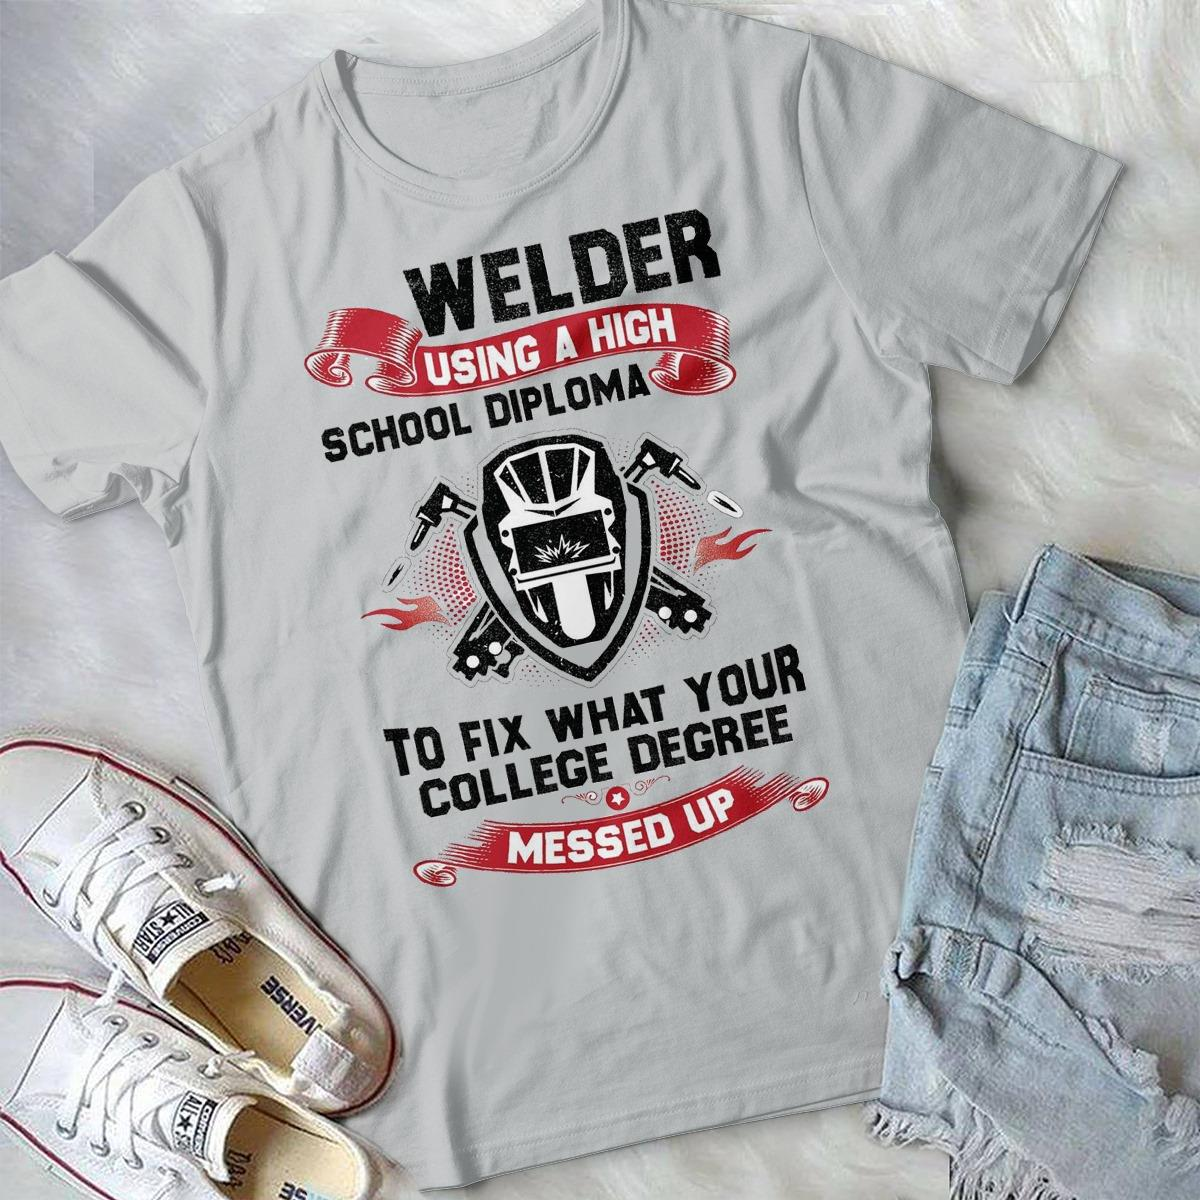 Welder Using A High School Diploma To Fix What Your College Degree Messed Up Shirt